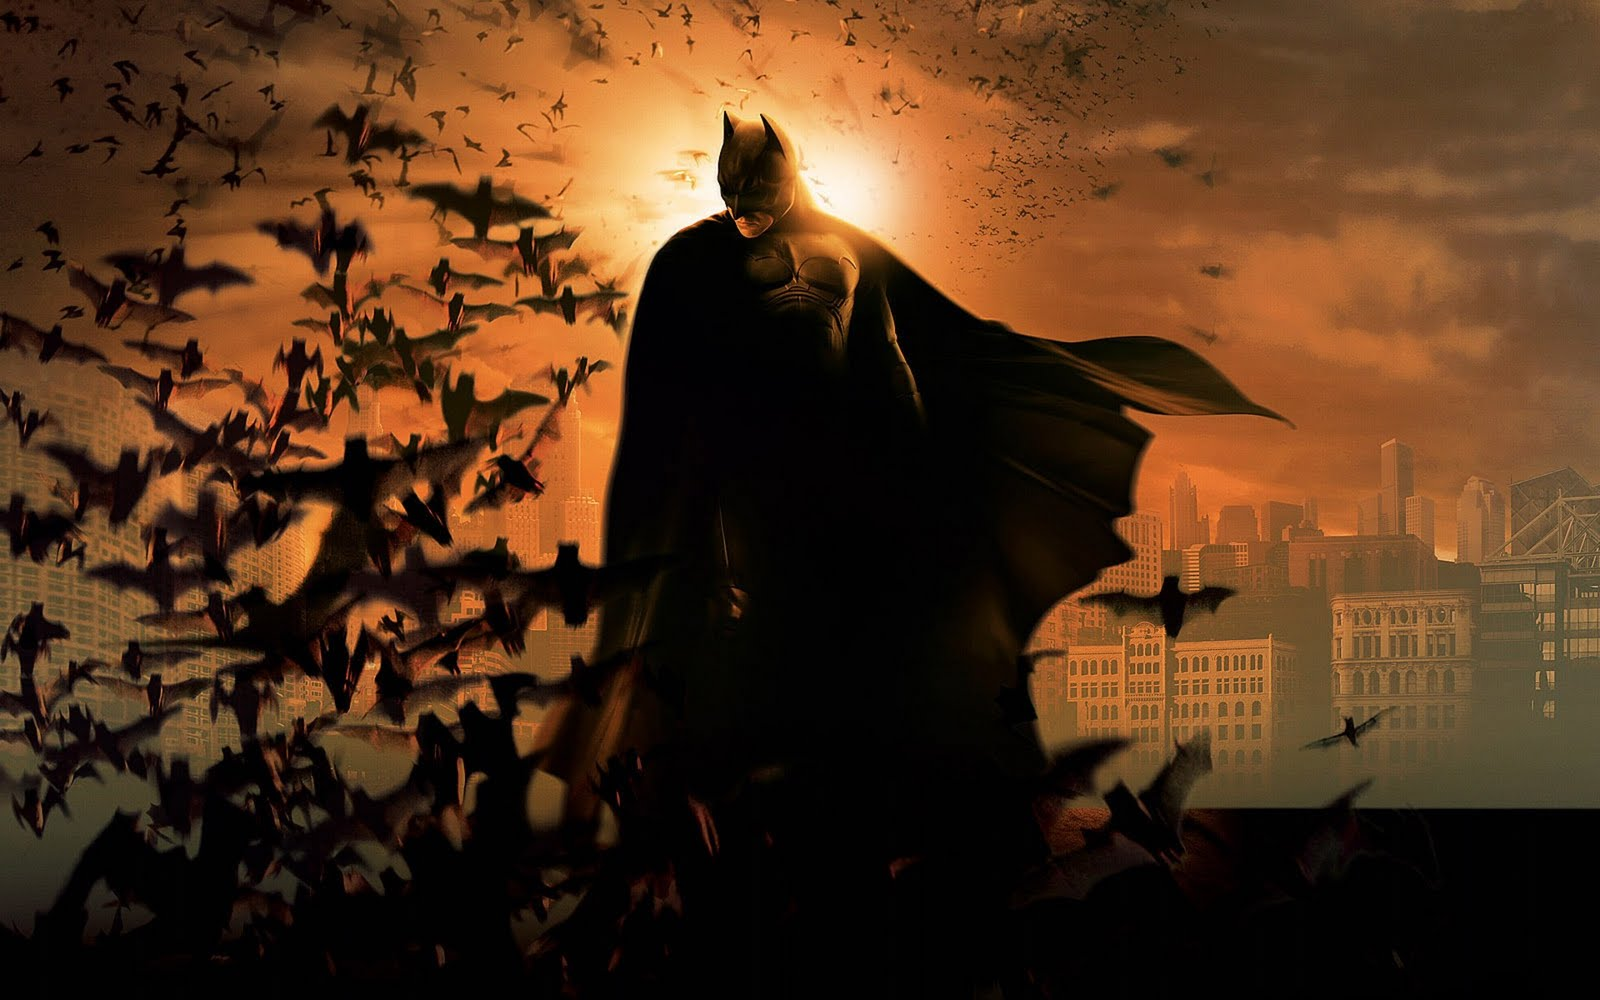 http://1.bp.blogspot.com/-bMhyl3atx4c/TyBrpXohchI/AAAAAAAAAGw/-MzuOCfTHnQ/s1600/batman-3-the-dark-knight-rises-HD_wallpapers.jpg